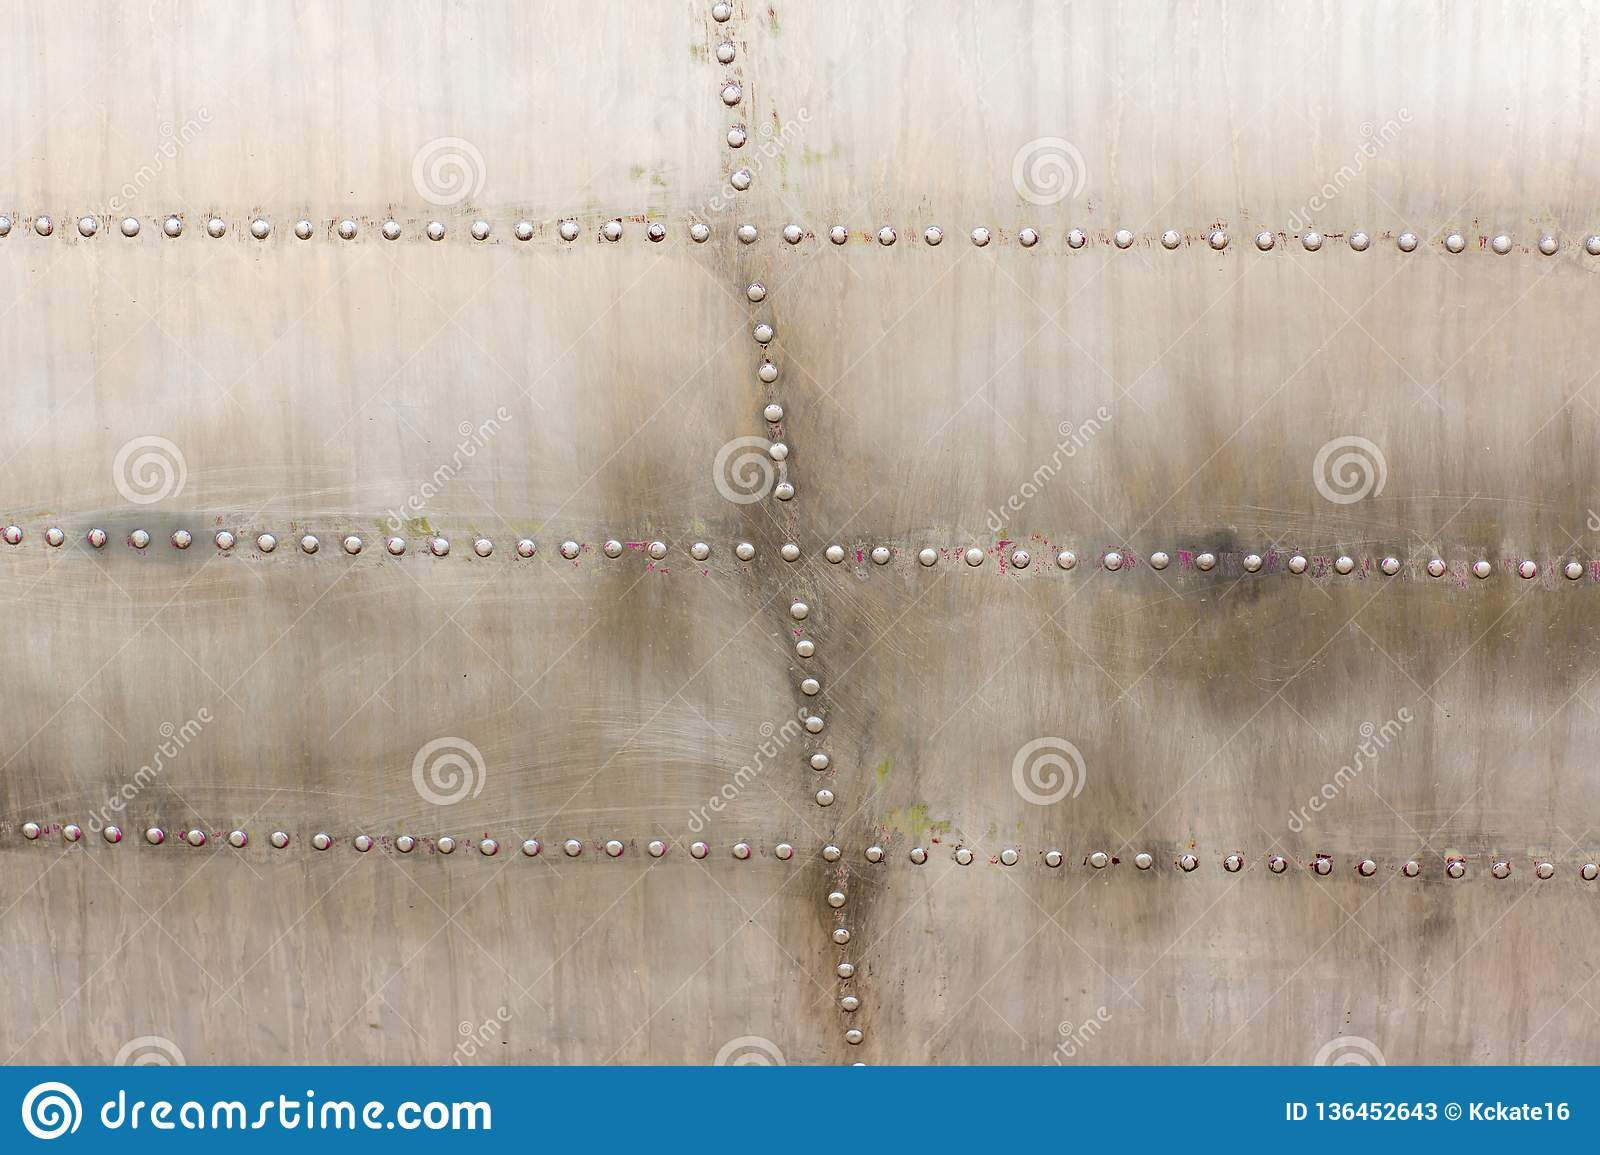 Old silver metal surface of the aircraft fuselage with rivets. Iron plate,steel sheet texture,pattern and background.